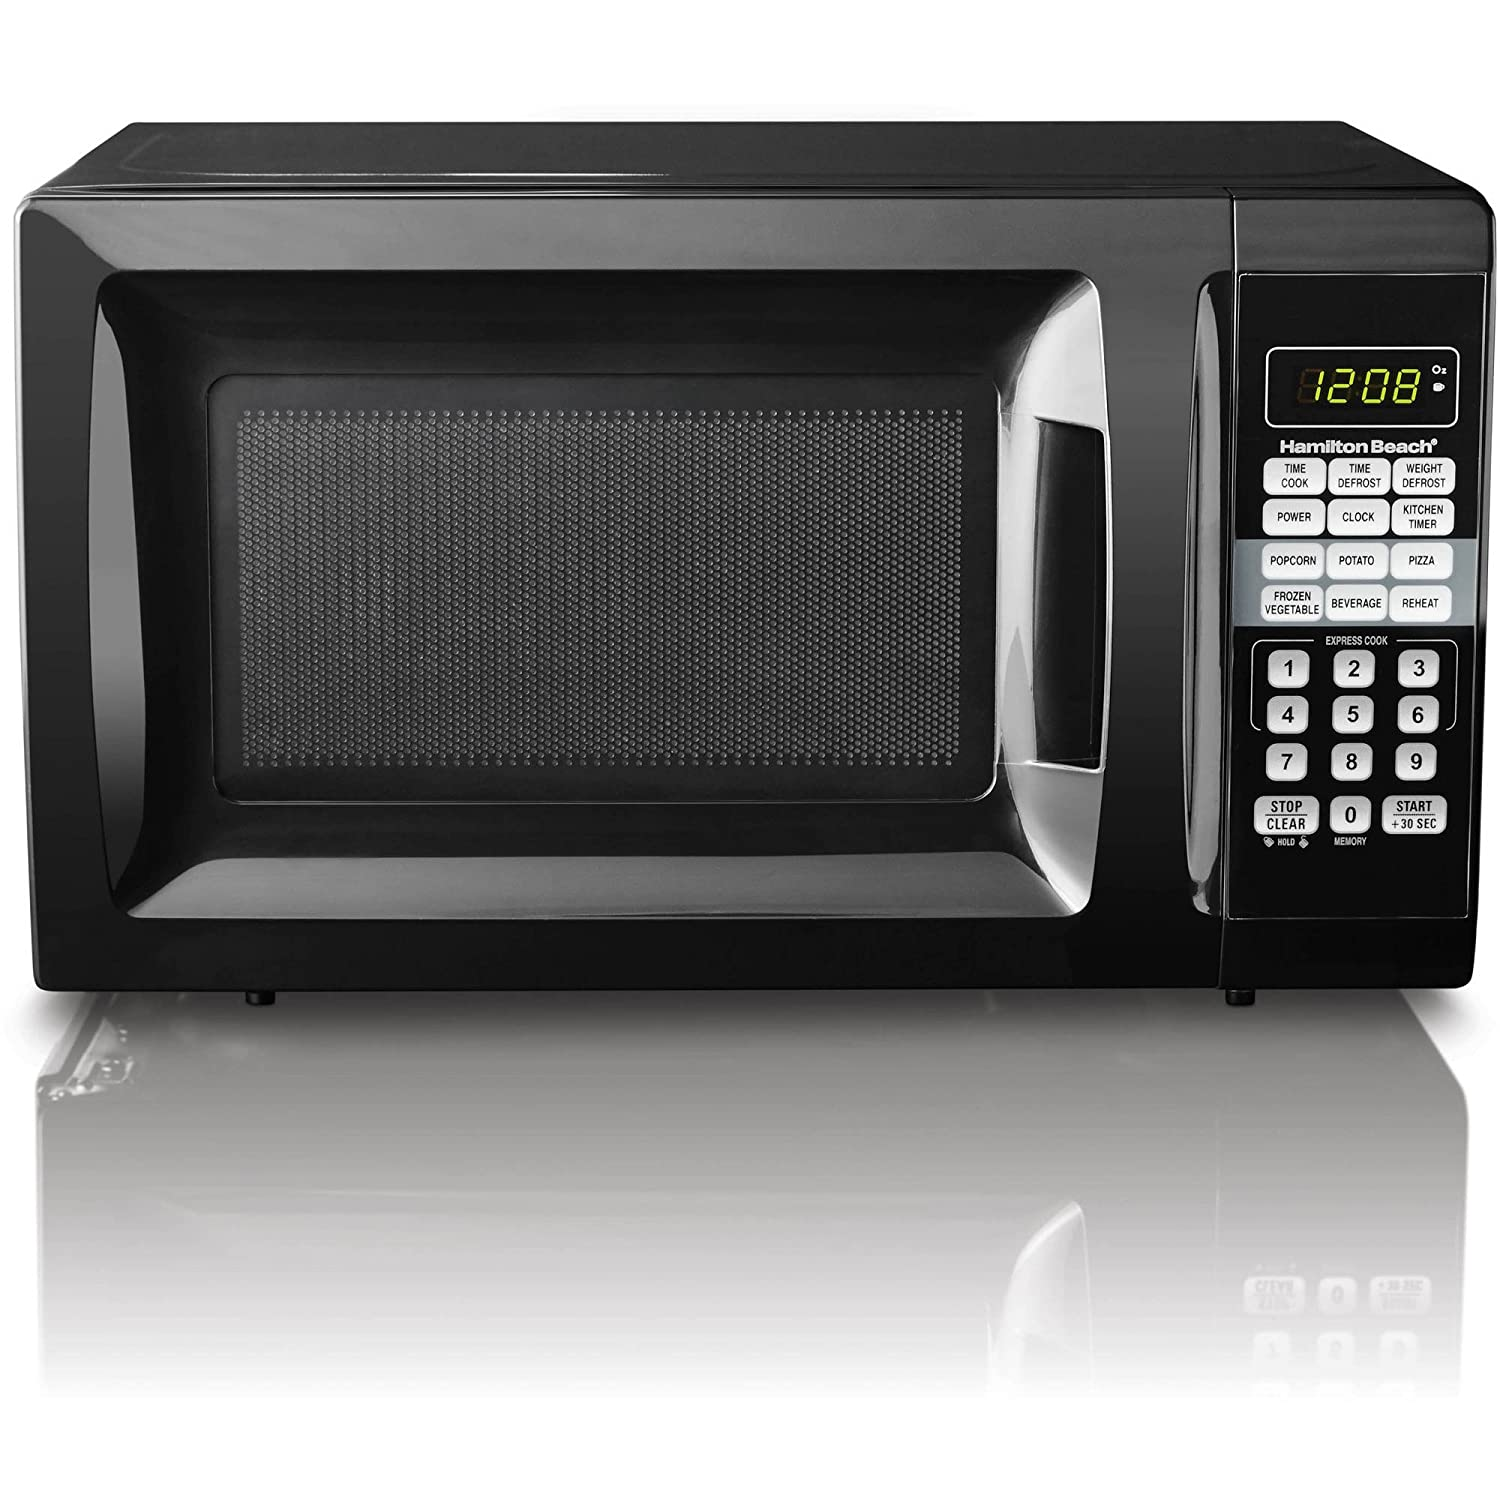 Hamilton Beach 0.7 cu ft Microwave Oven (Black)